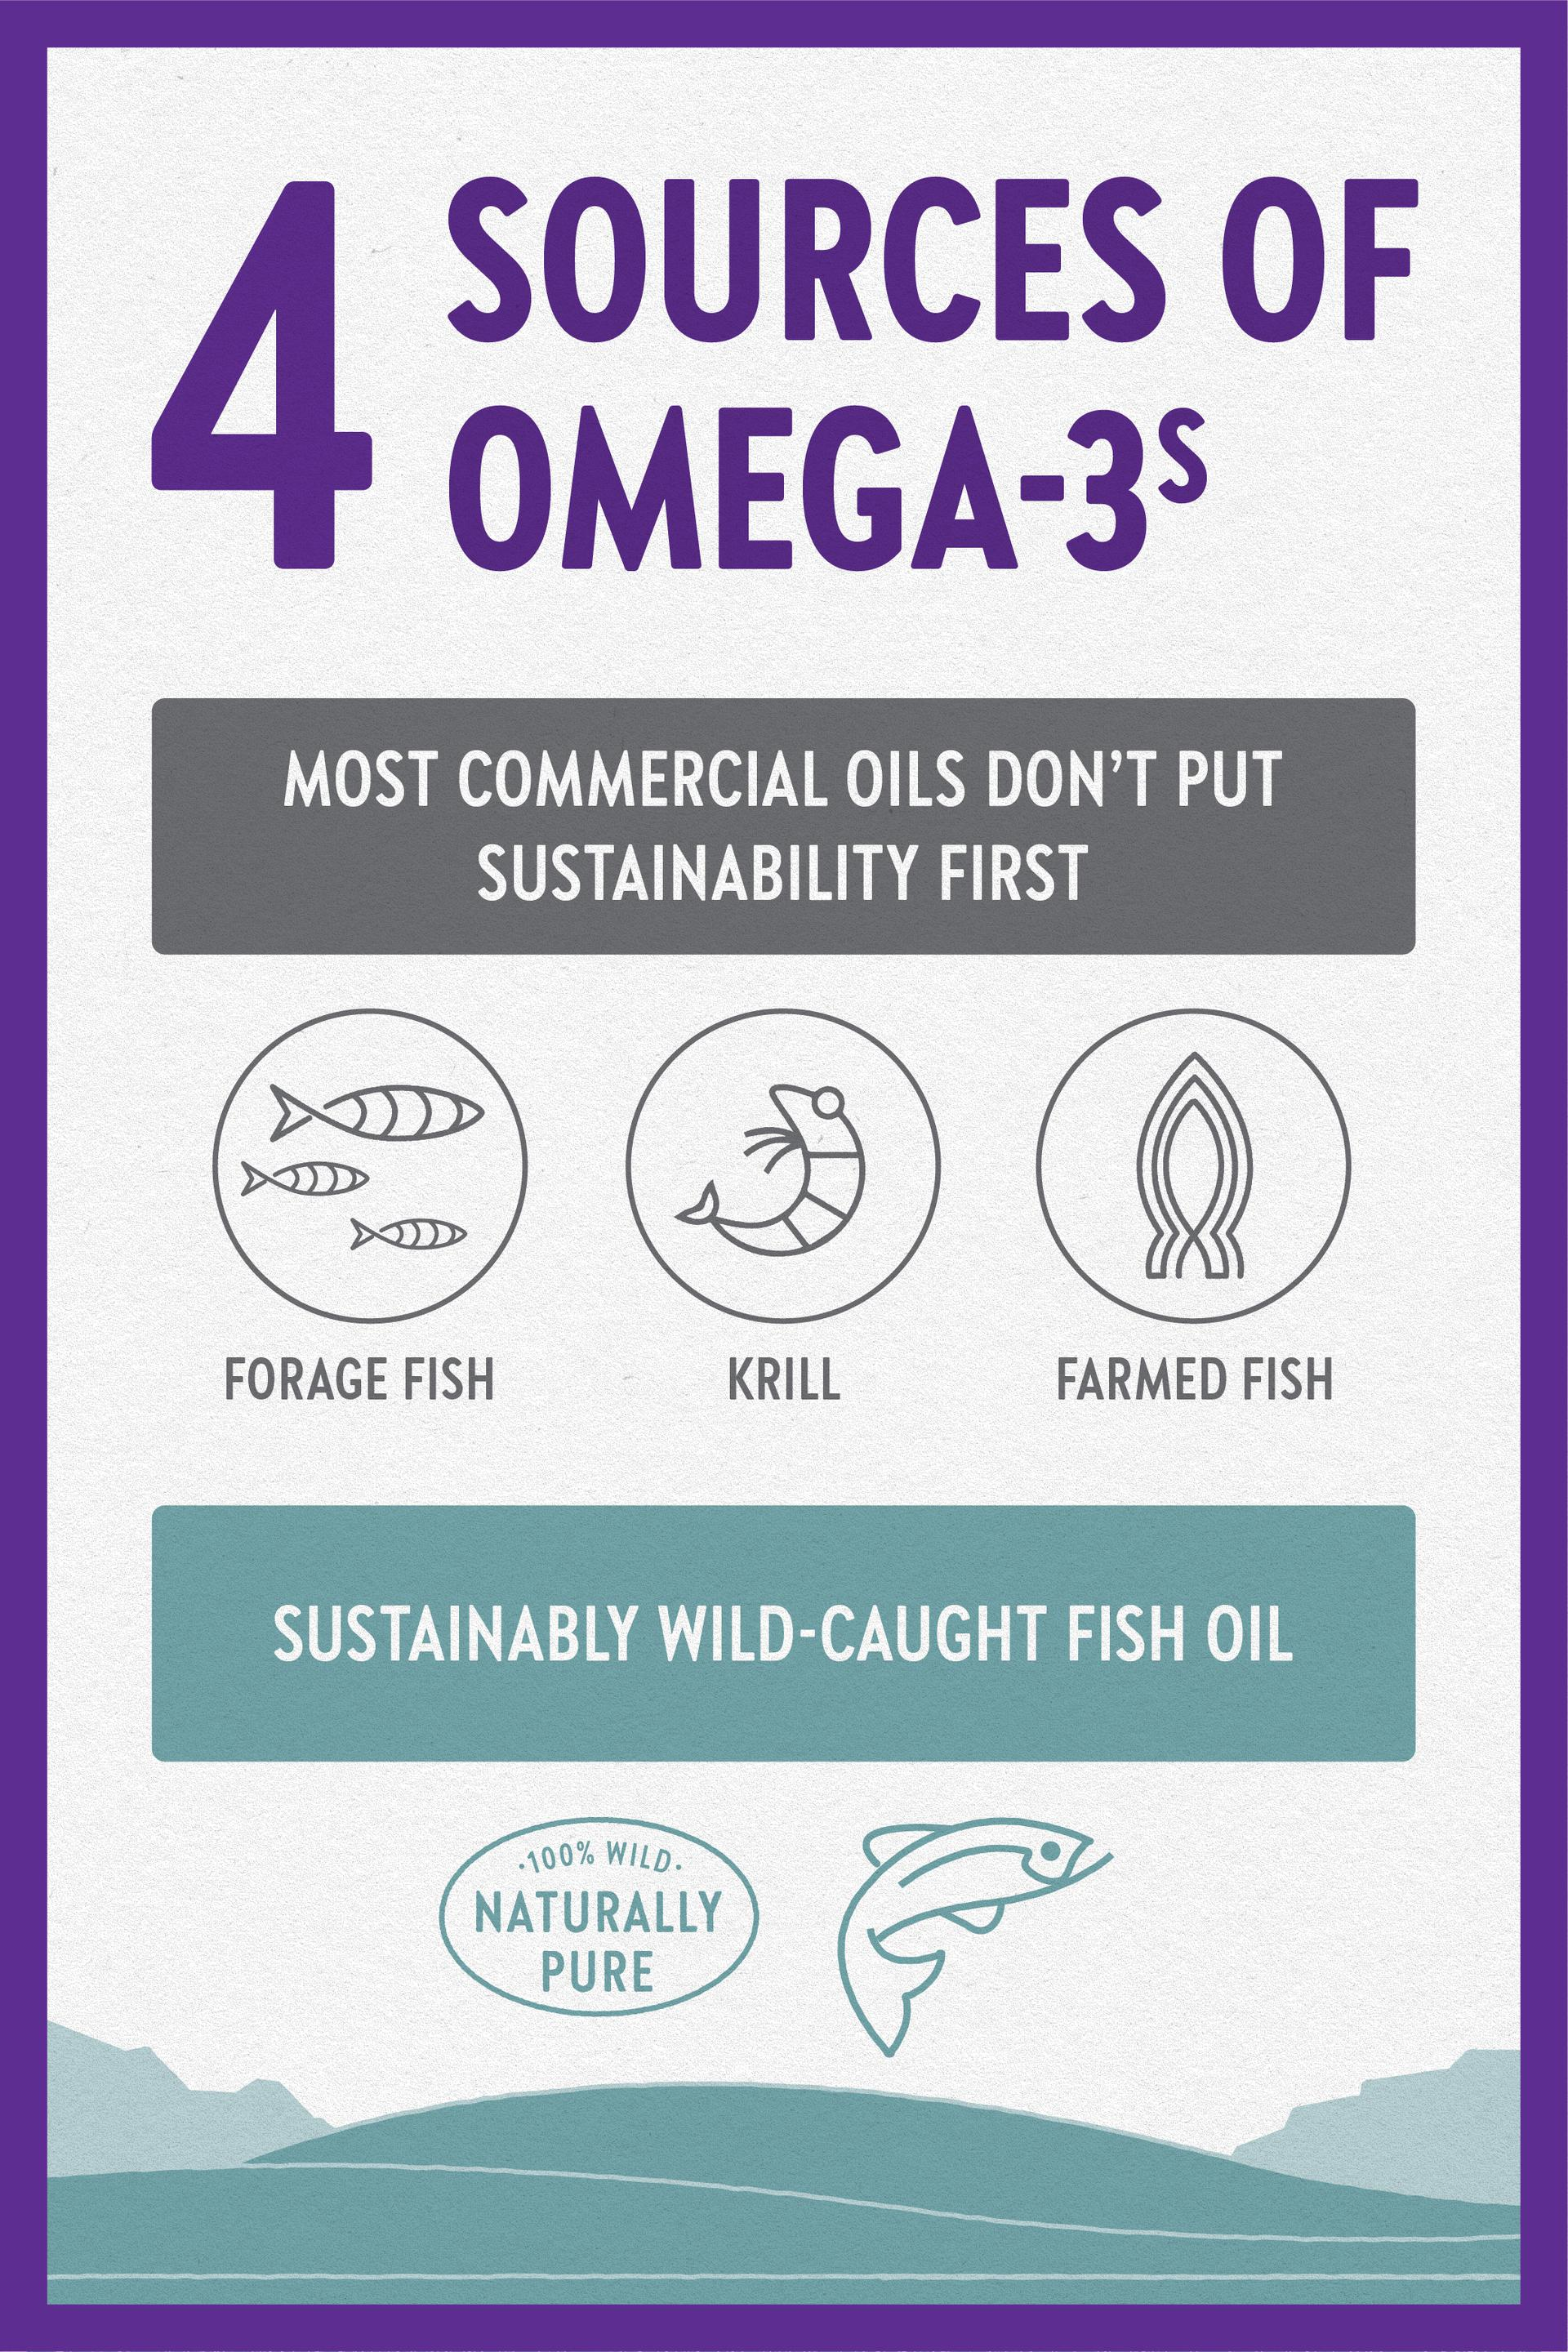 4 sources of omega-3s